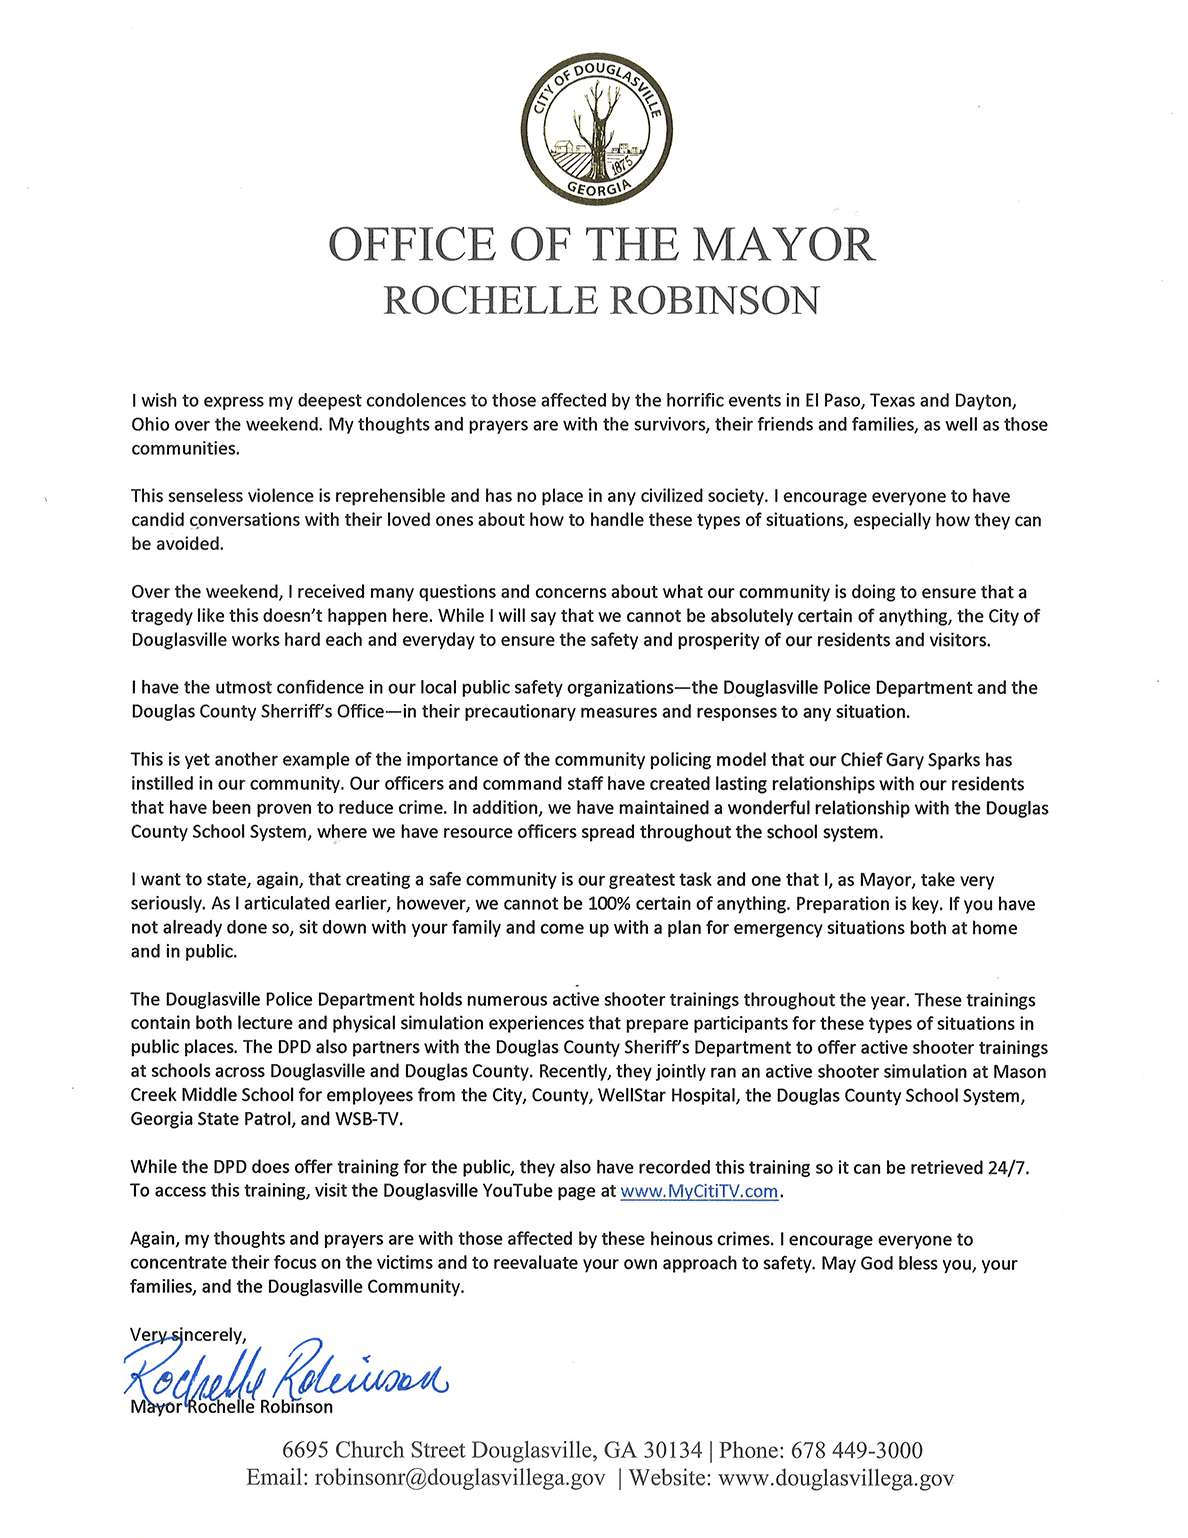 A Letter From Mayor Robinson